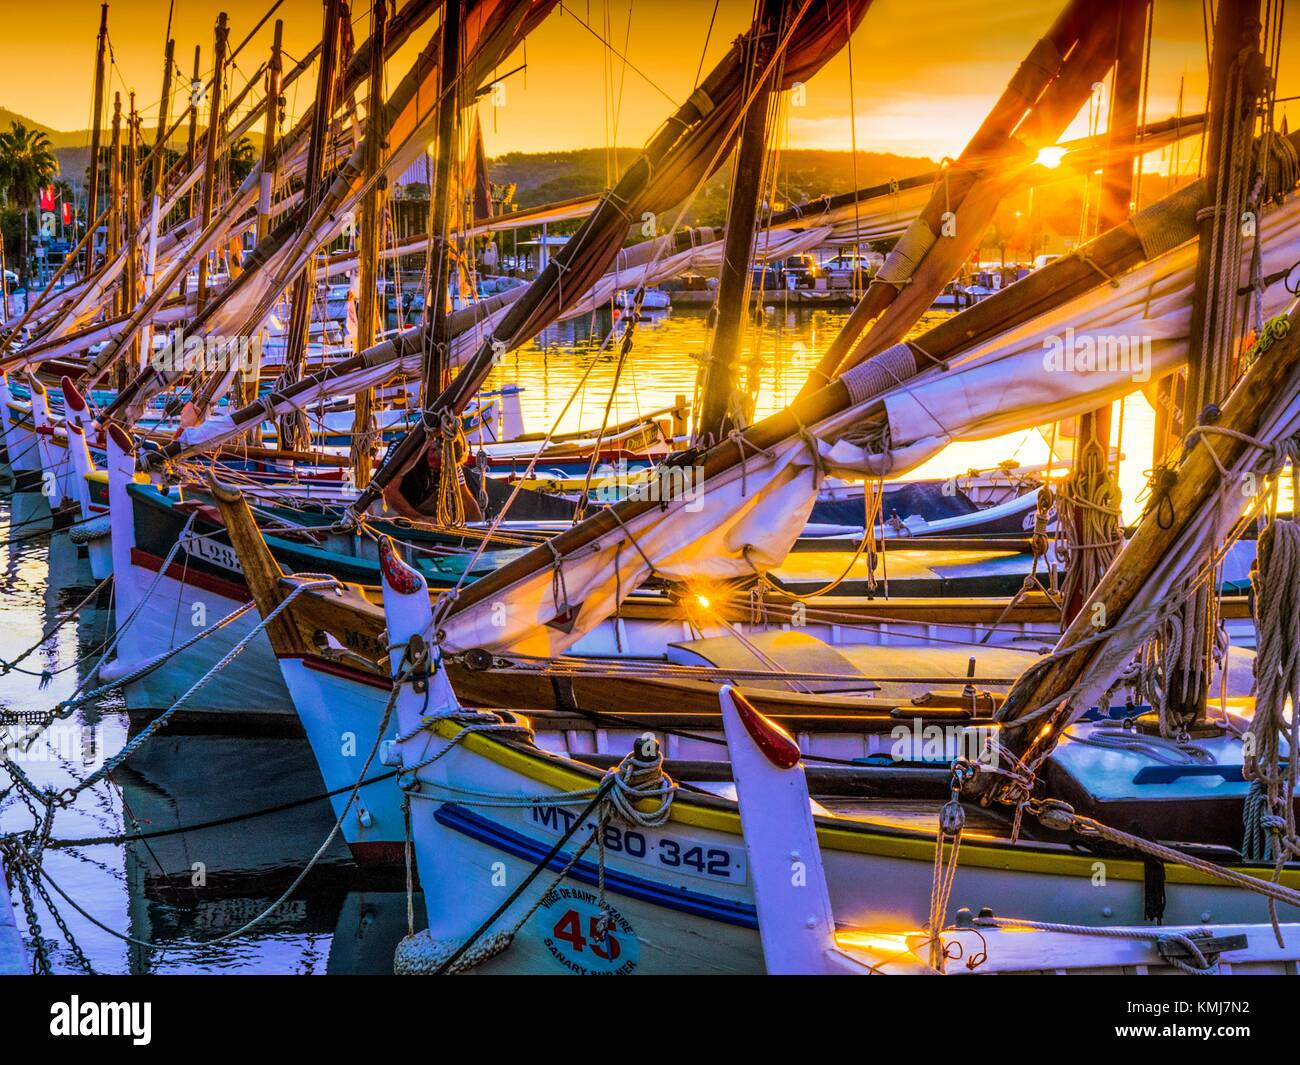 France, Paca-Cote d´Azur, sunrise on the fishing harbour at Bandol. - Stock Image